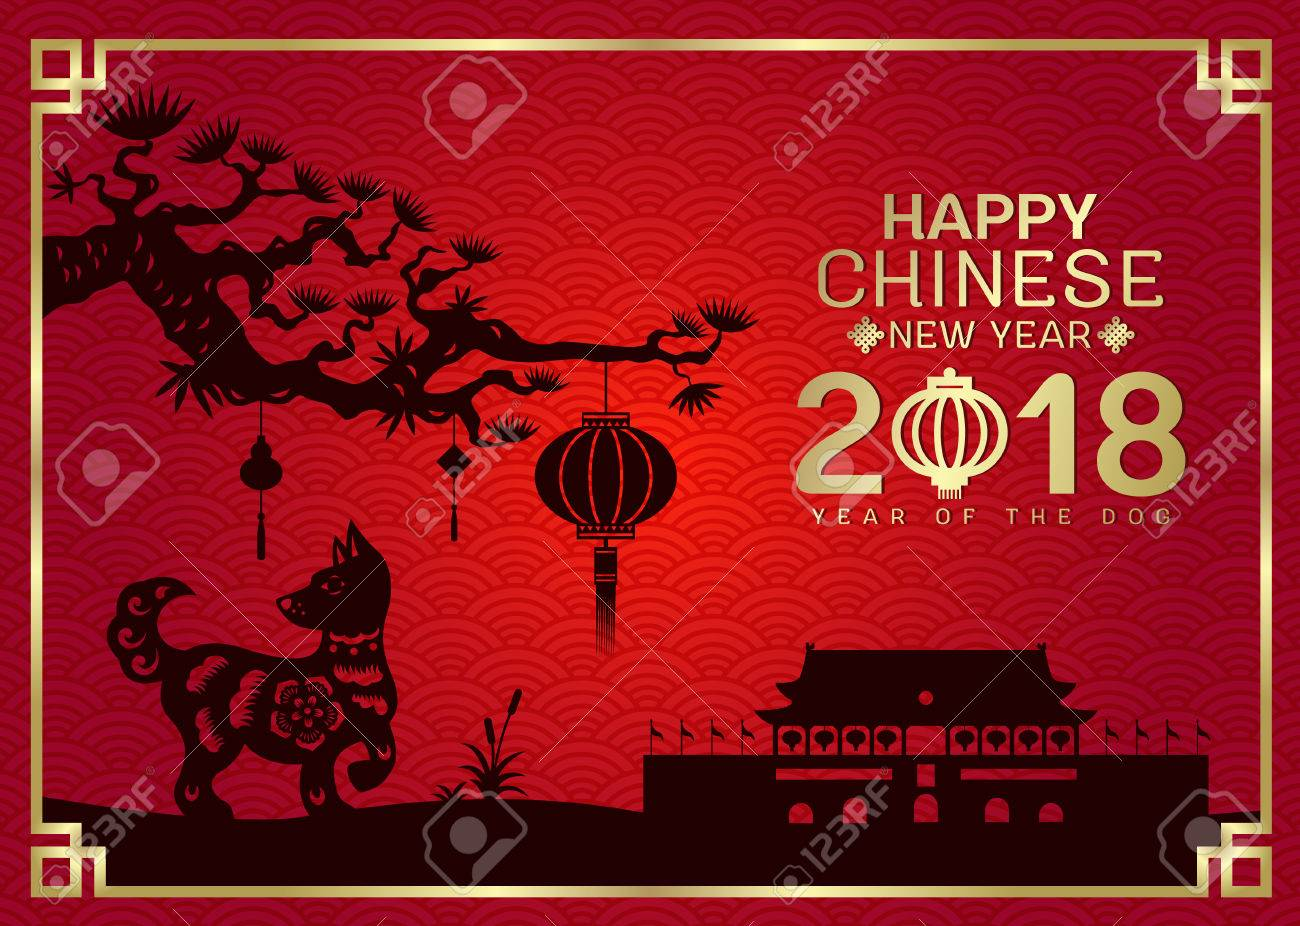 happy chinese new year 2018 with silhouette paper cut dog zodiac and china knot and lantern - 2018 Chinese New Year